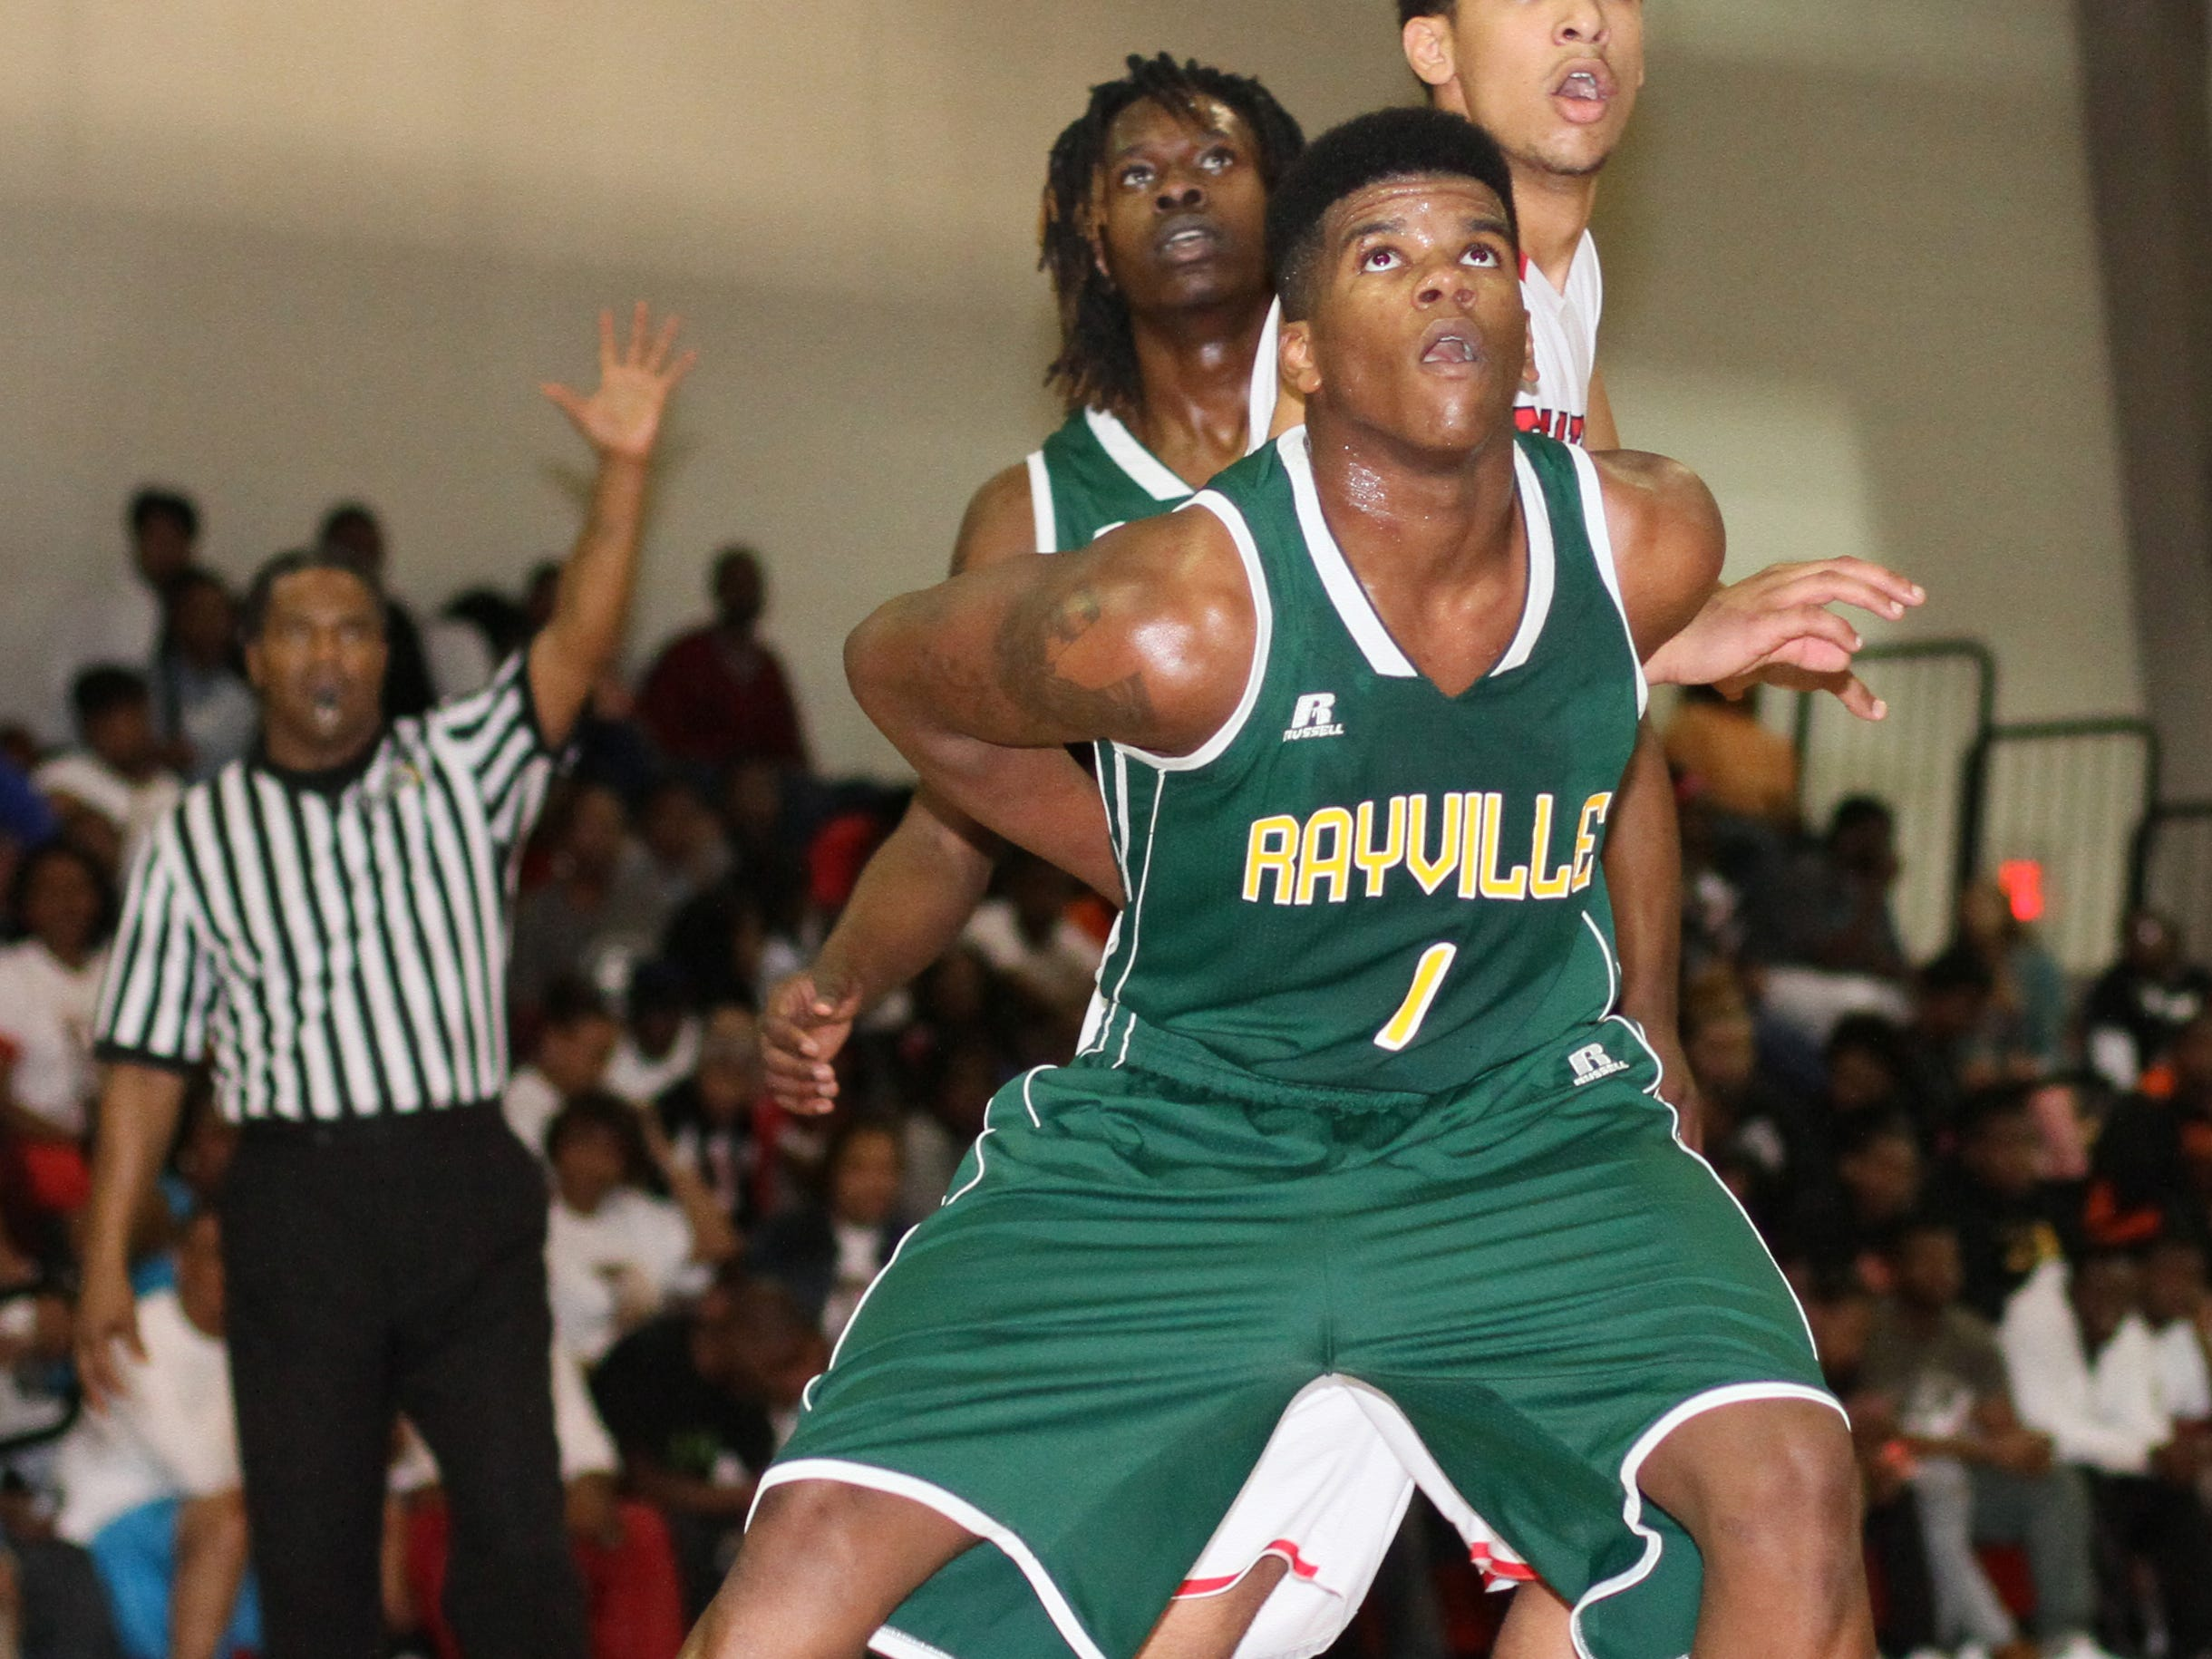 Jamarion 'Papa' Johnson scored 11 points to aid Rayville in beating Bossier on Tuesday in the Class 3A playoffs.